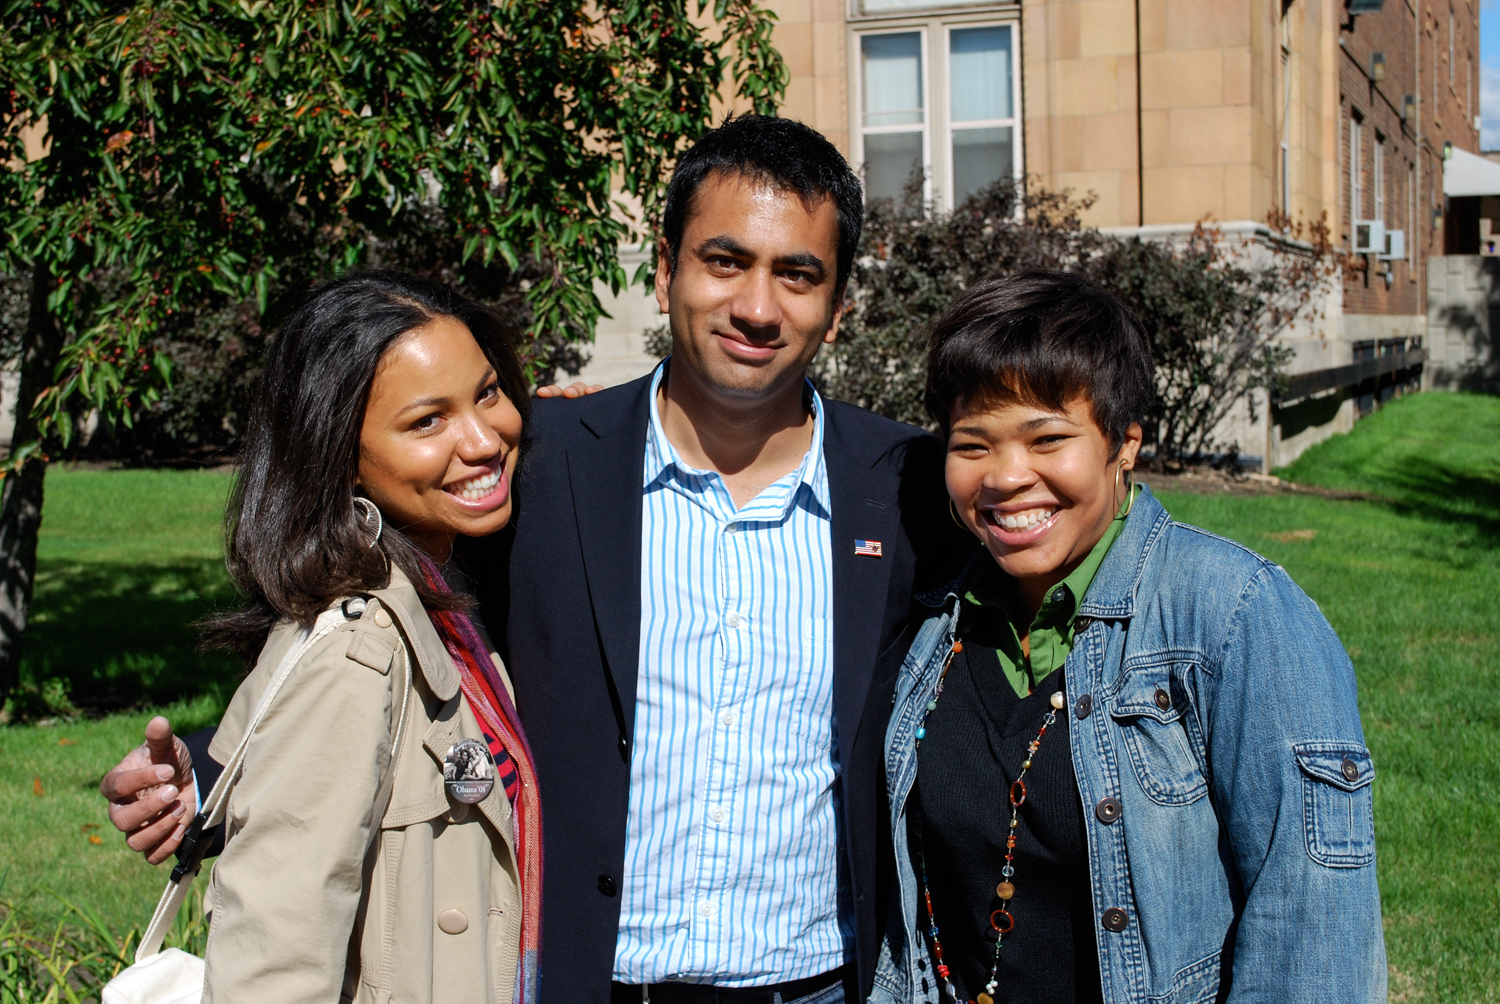 Kal Penn, Obama For America staffers, Detroit, 2008